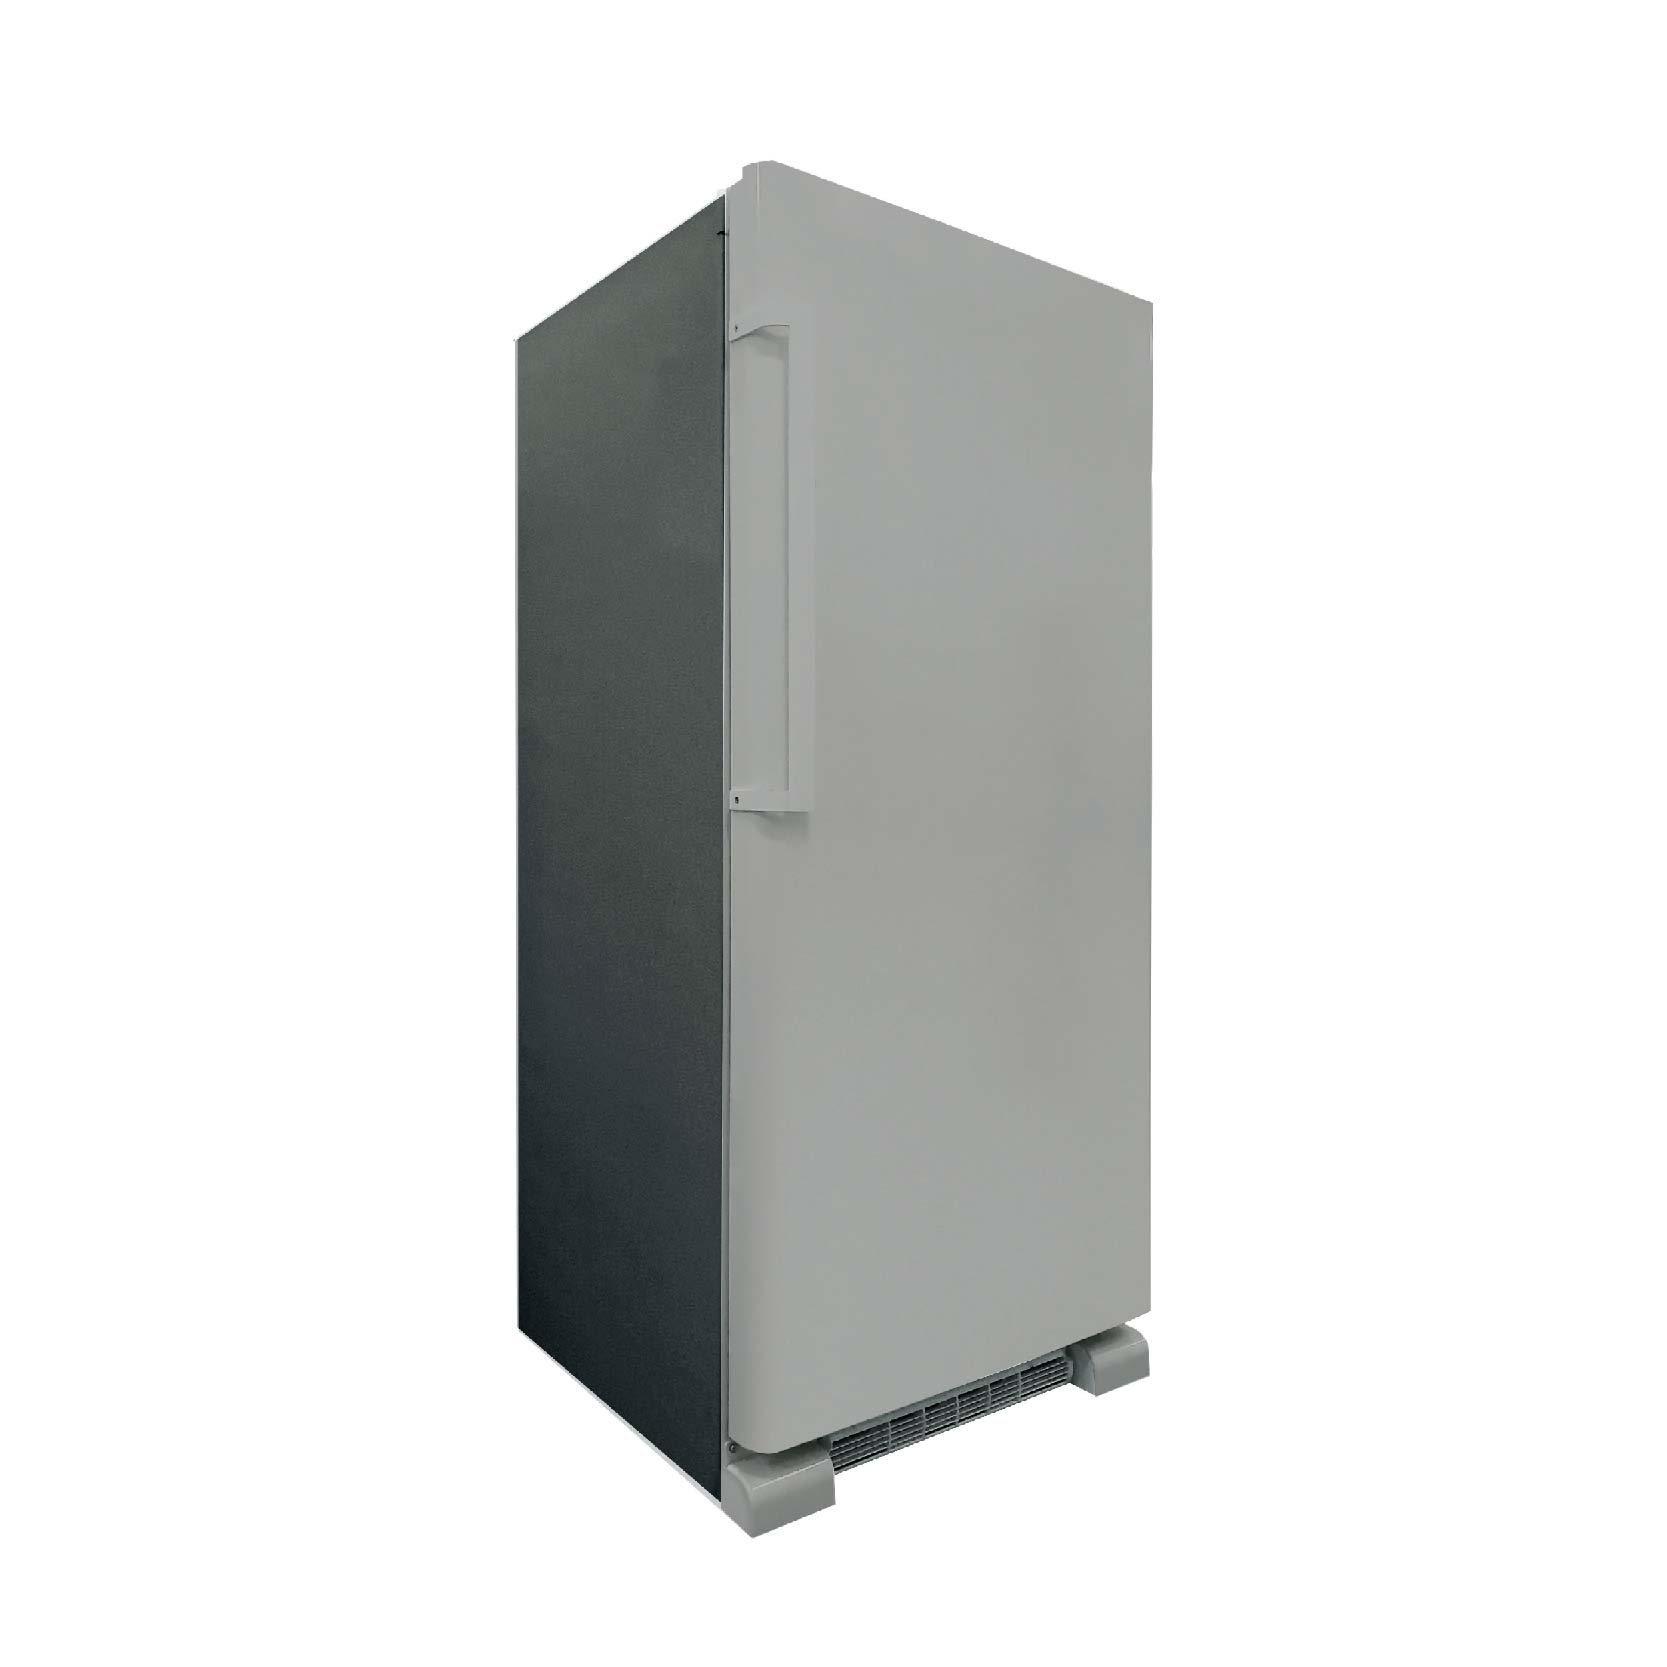 Conserv 17 cu. ft. Convertible Upright Freezer-Refrigerator in Stainless